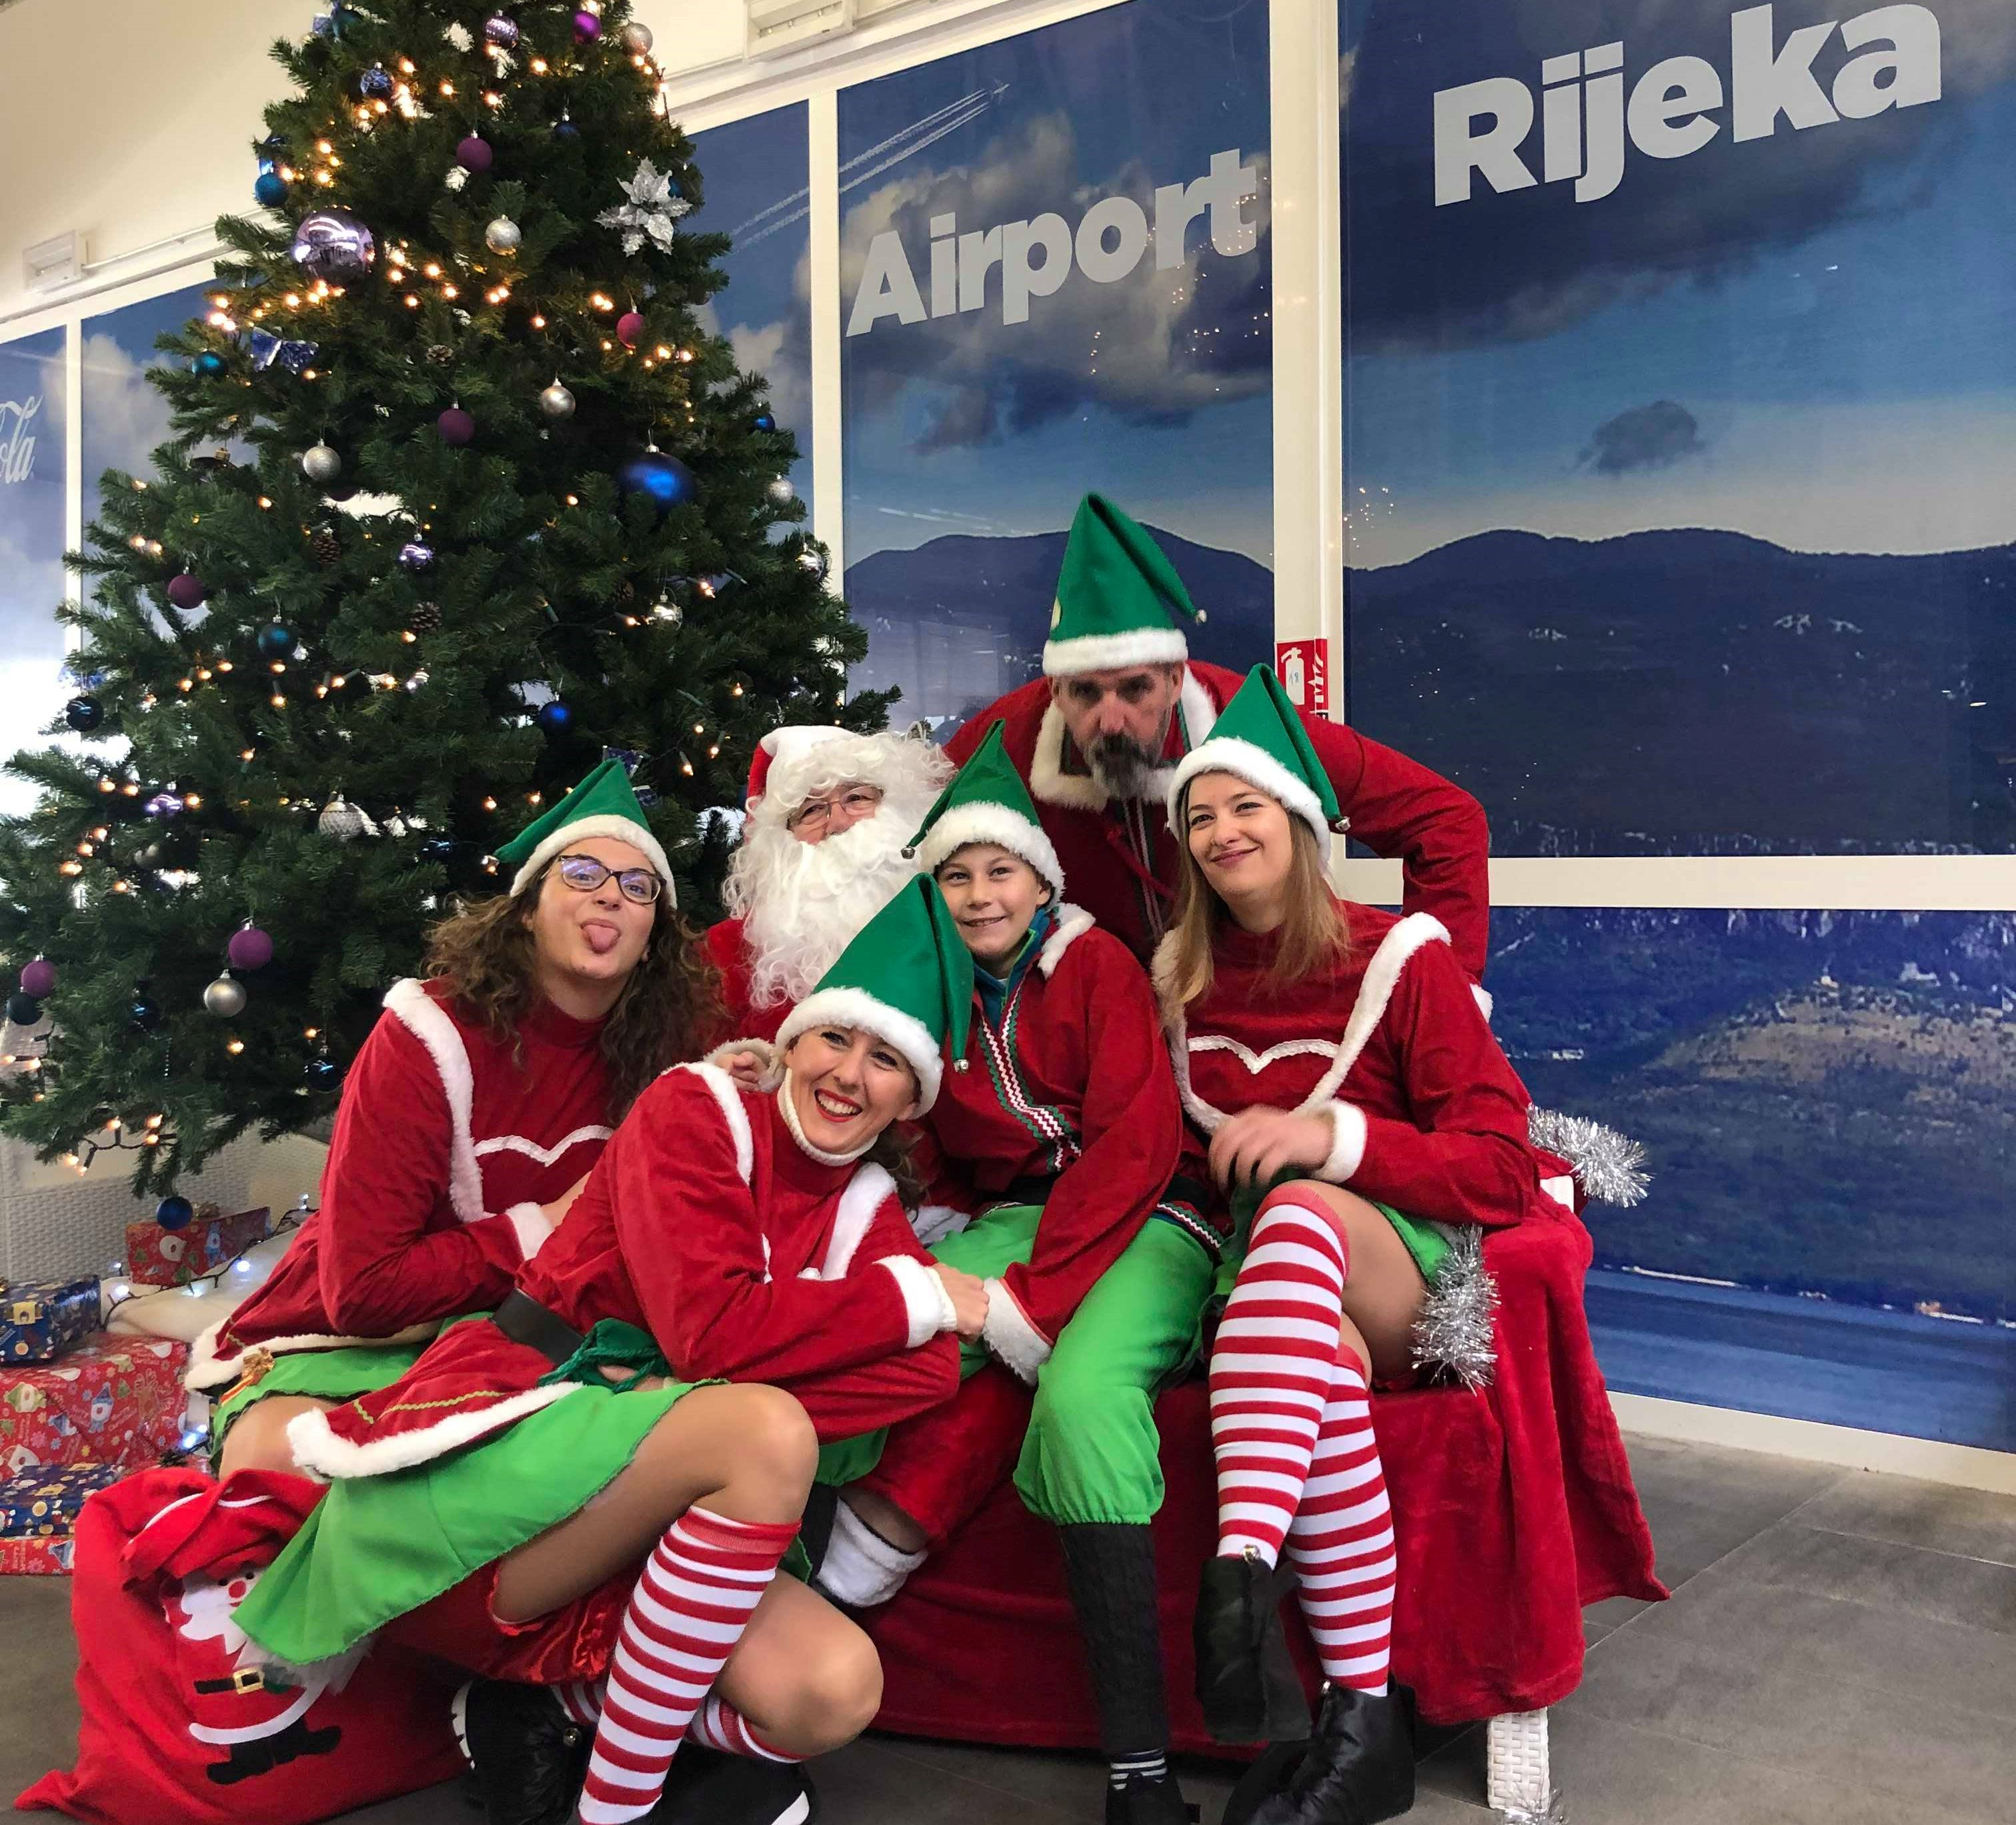 Santa Claus landed at Rijeka Airport